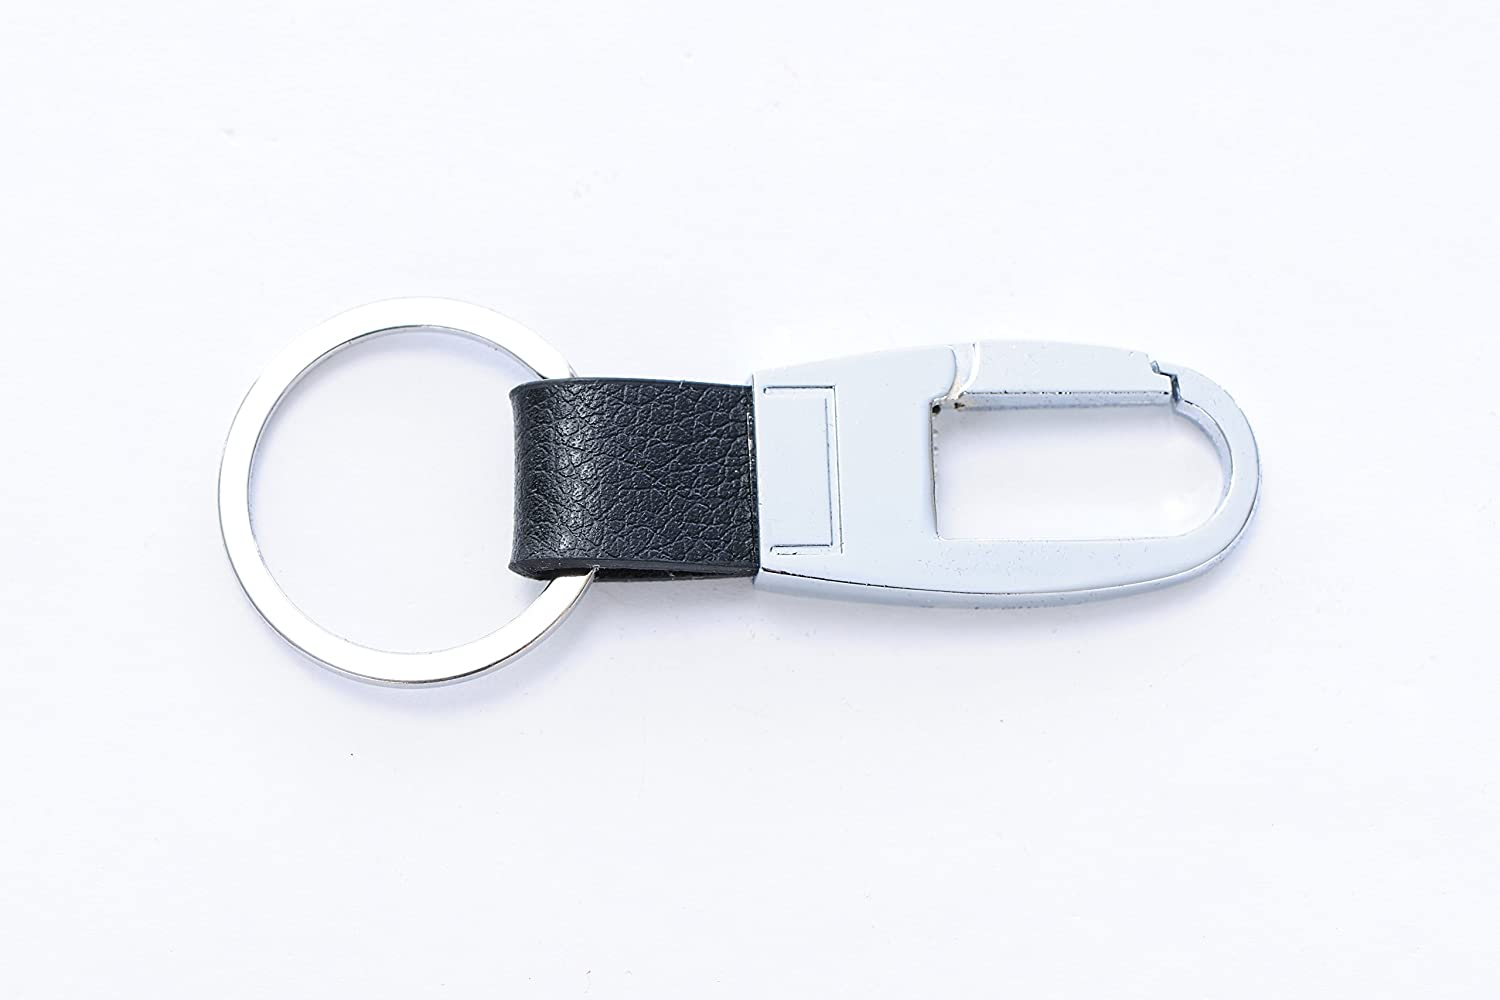 Top Black Leather Keychain for Men and Women - Grained Leather Key Ring Holder - Easy to Use - Strong Metal Ring and Clasp - Easily Fits in Pocket - Valet Key Chain - Quality Guaranteed hot sale